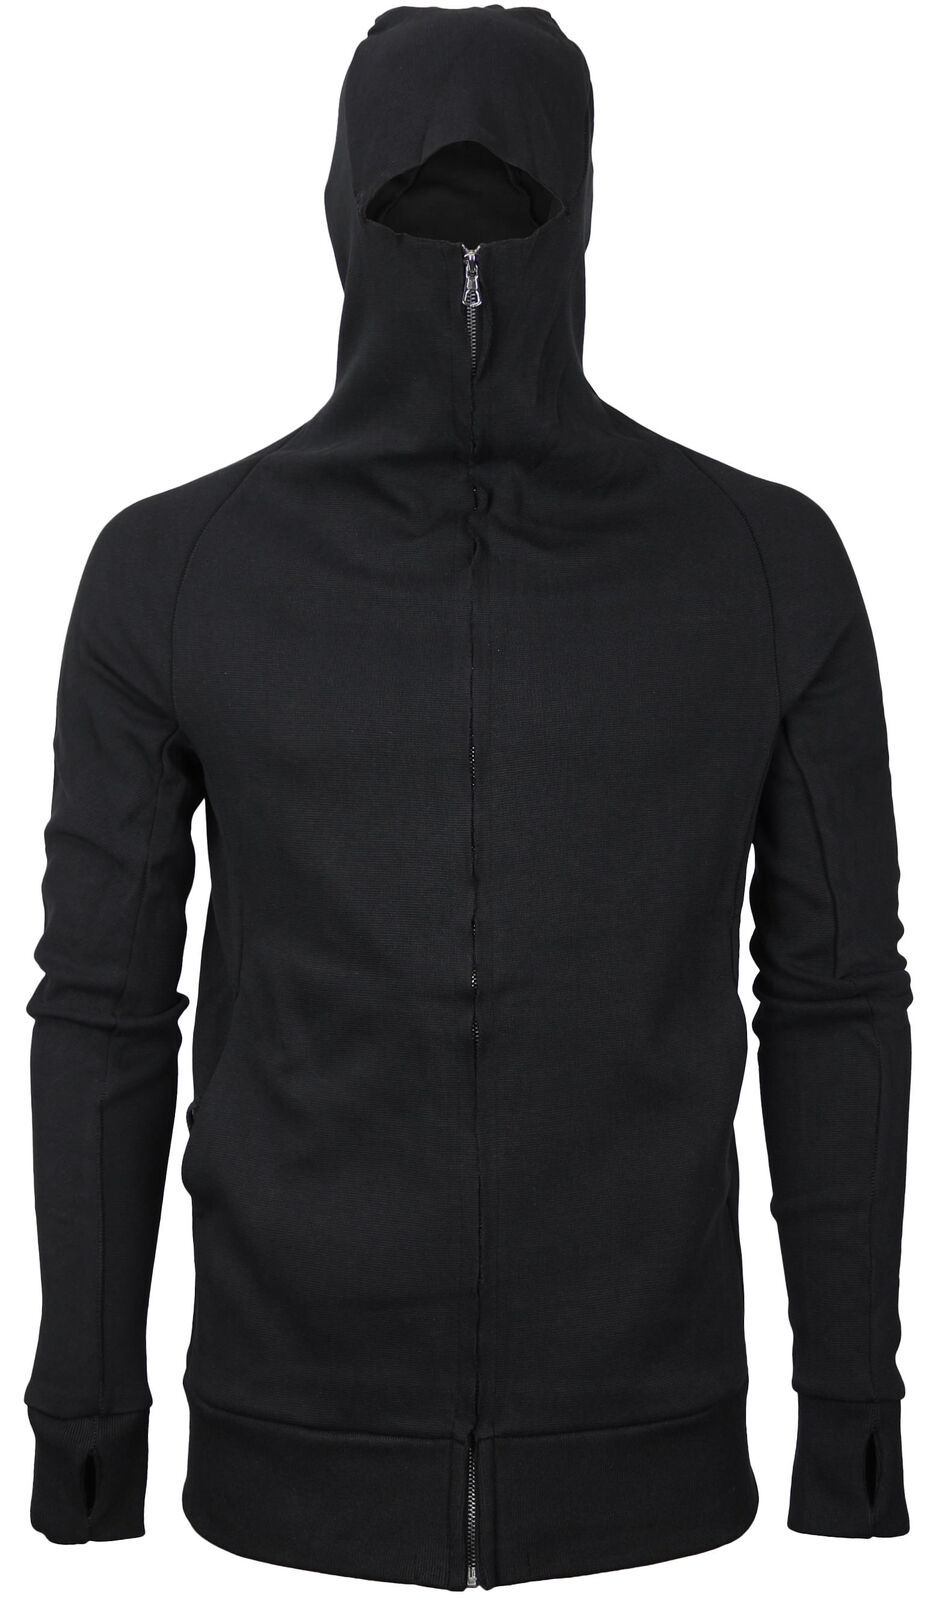 vkwear Men's Zip Up Cotton Slim Fit Thumbholes Ninja Turtleneck Hoodie Jacket